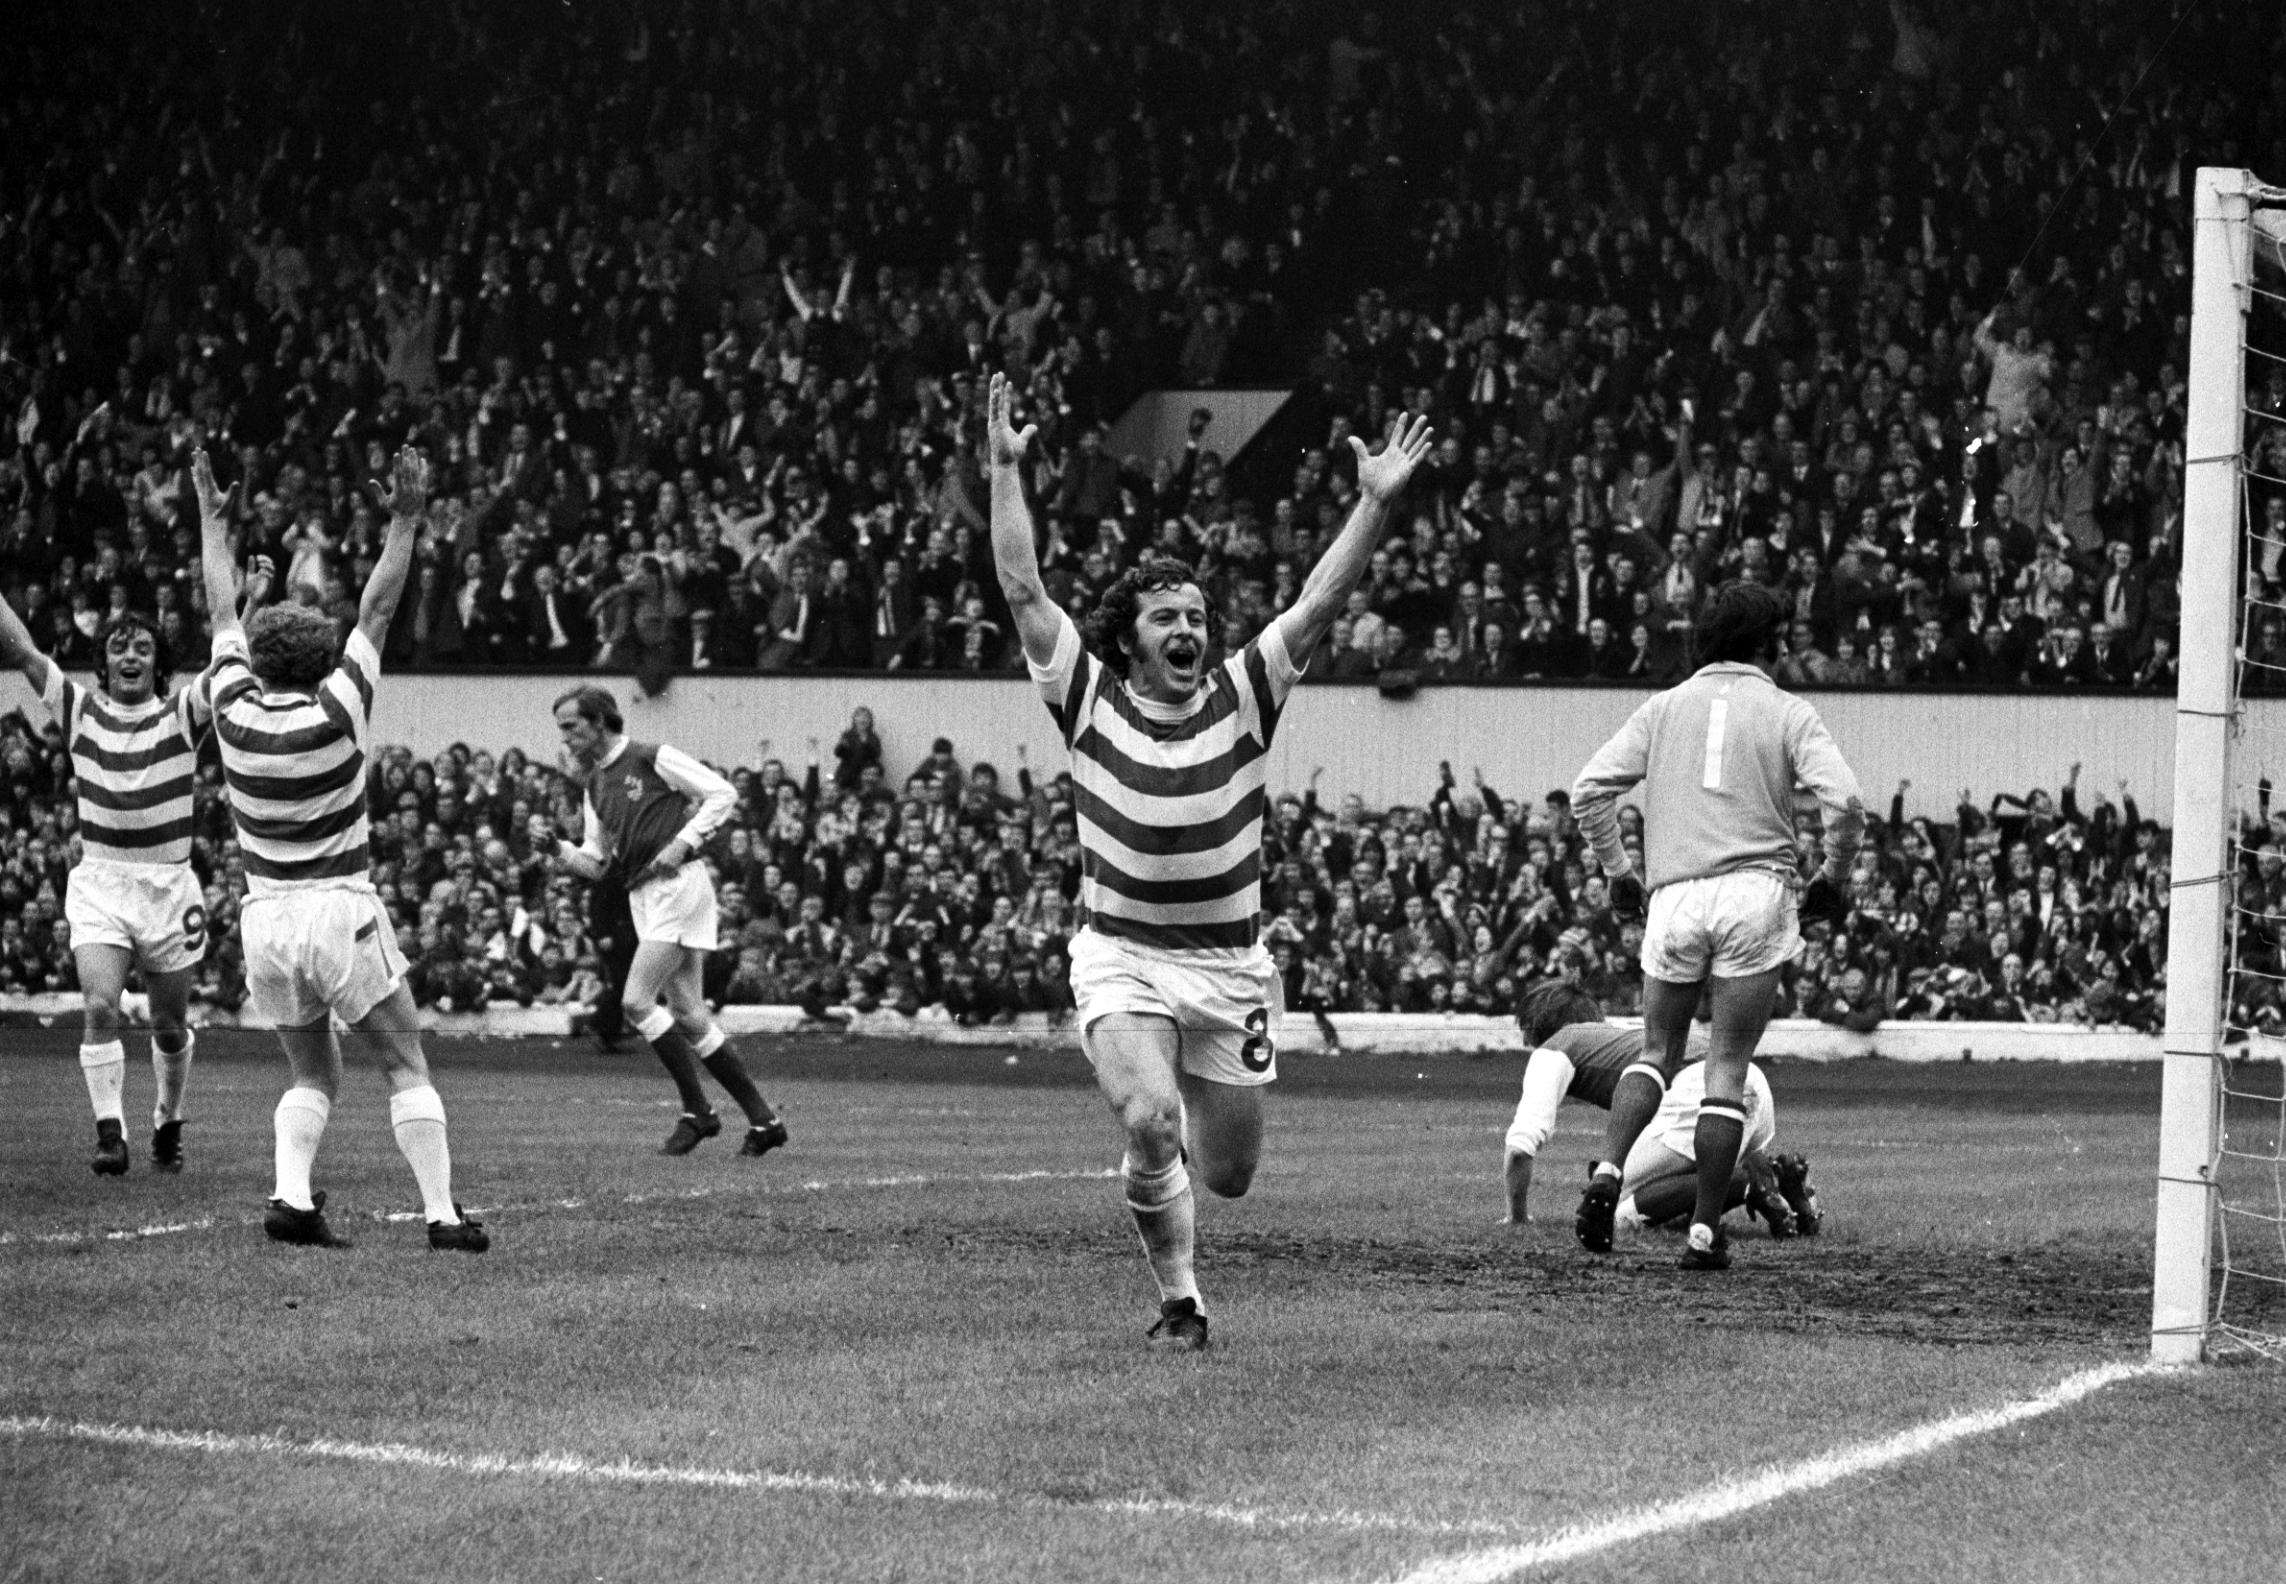 Dixie Deans doing what he did best - which was scoring goals for Celtic